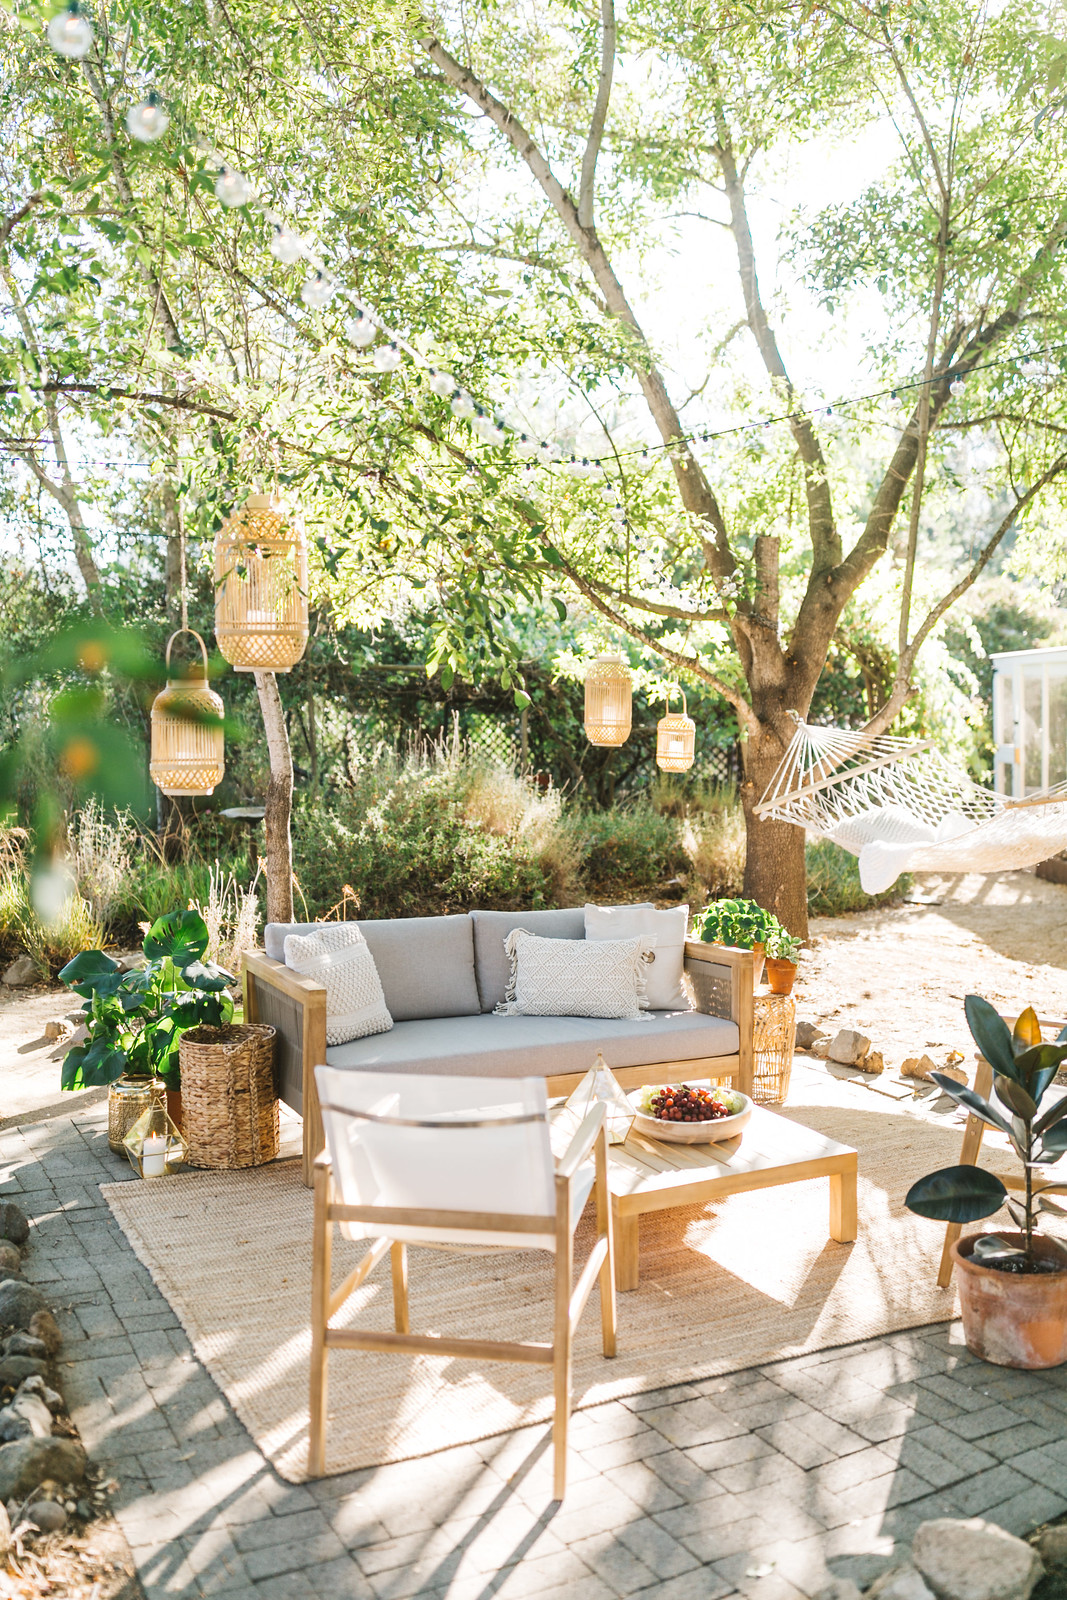 Outdoor Patio Ideas | Outdoor Decor | Outdoor Oasis Backyard | Super Chic Backyard Ideas | Outdoor Space Inspiration | Dream Backyard | 5 Tips for Creating a Cozy Outdoor Oasis at Your Home | Backyards that Inspire Me | Terrace | Porch | Patio Renovation | Patio Remodel | Best Decorated Small Backyards on Pinterest | Boho Patio Inspiration | Outdoor Furniture Inspiration | Cozy Neutral Outdoor Decor